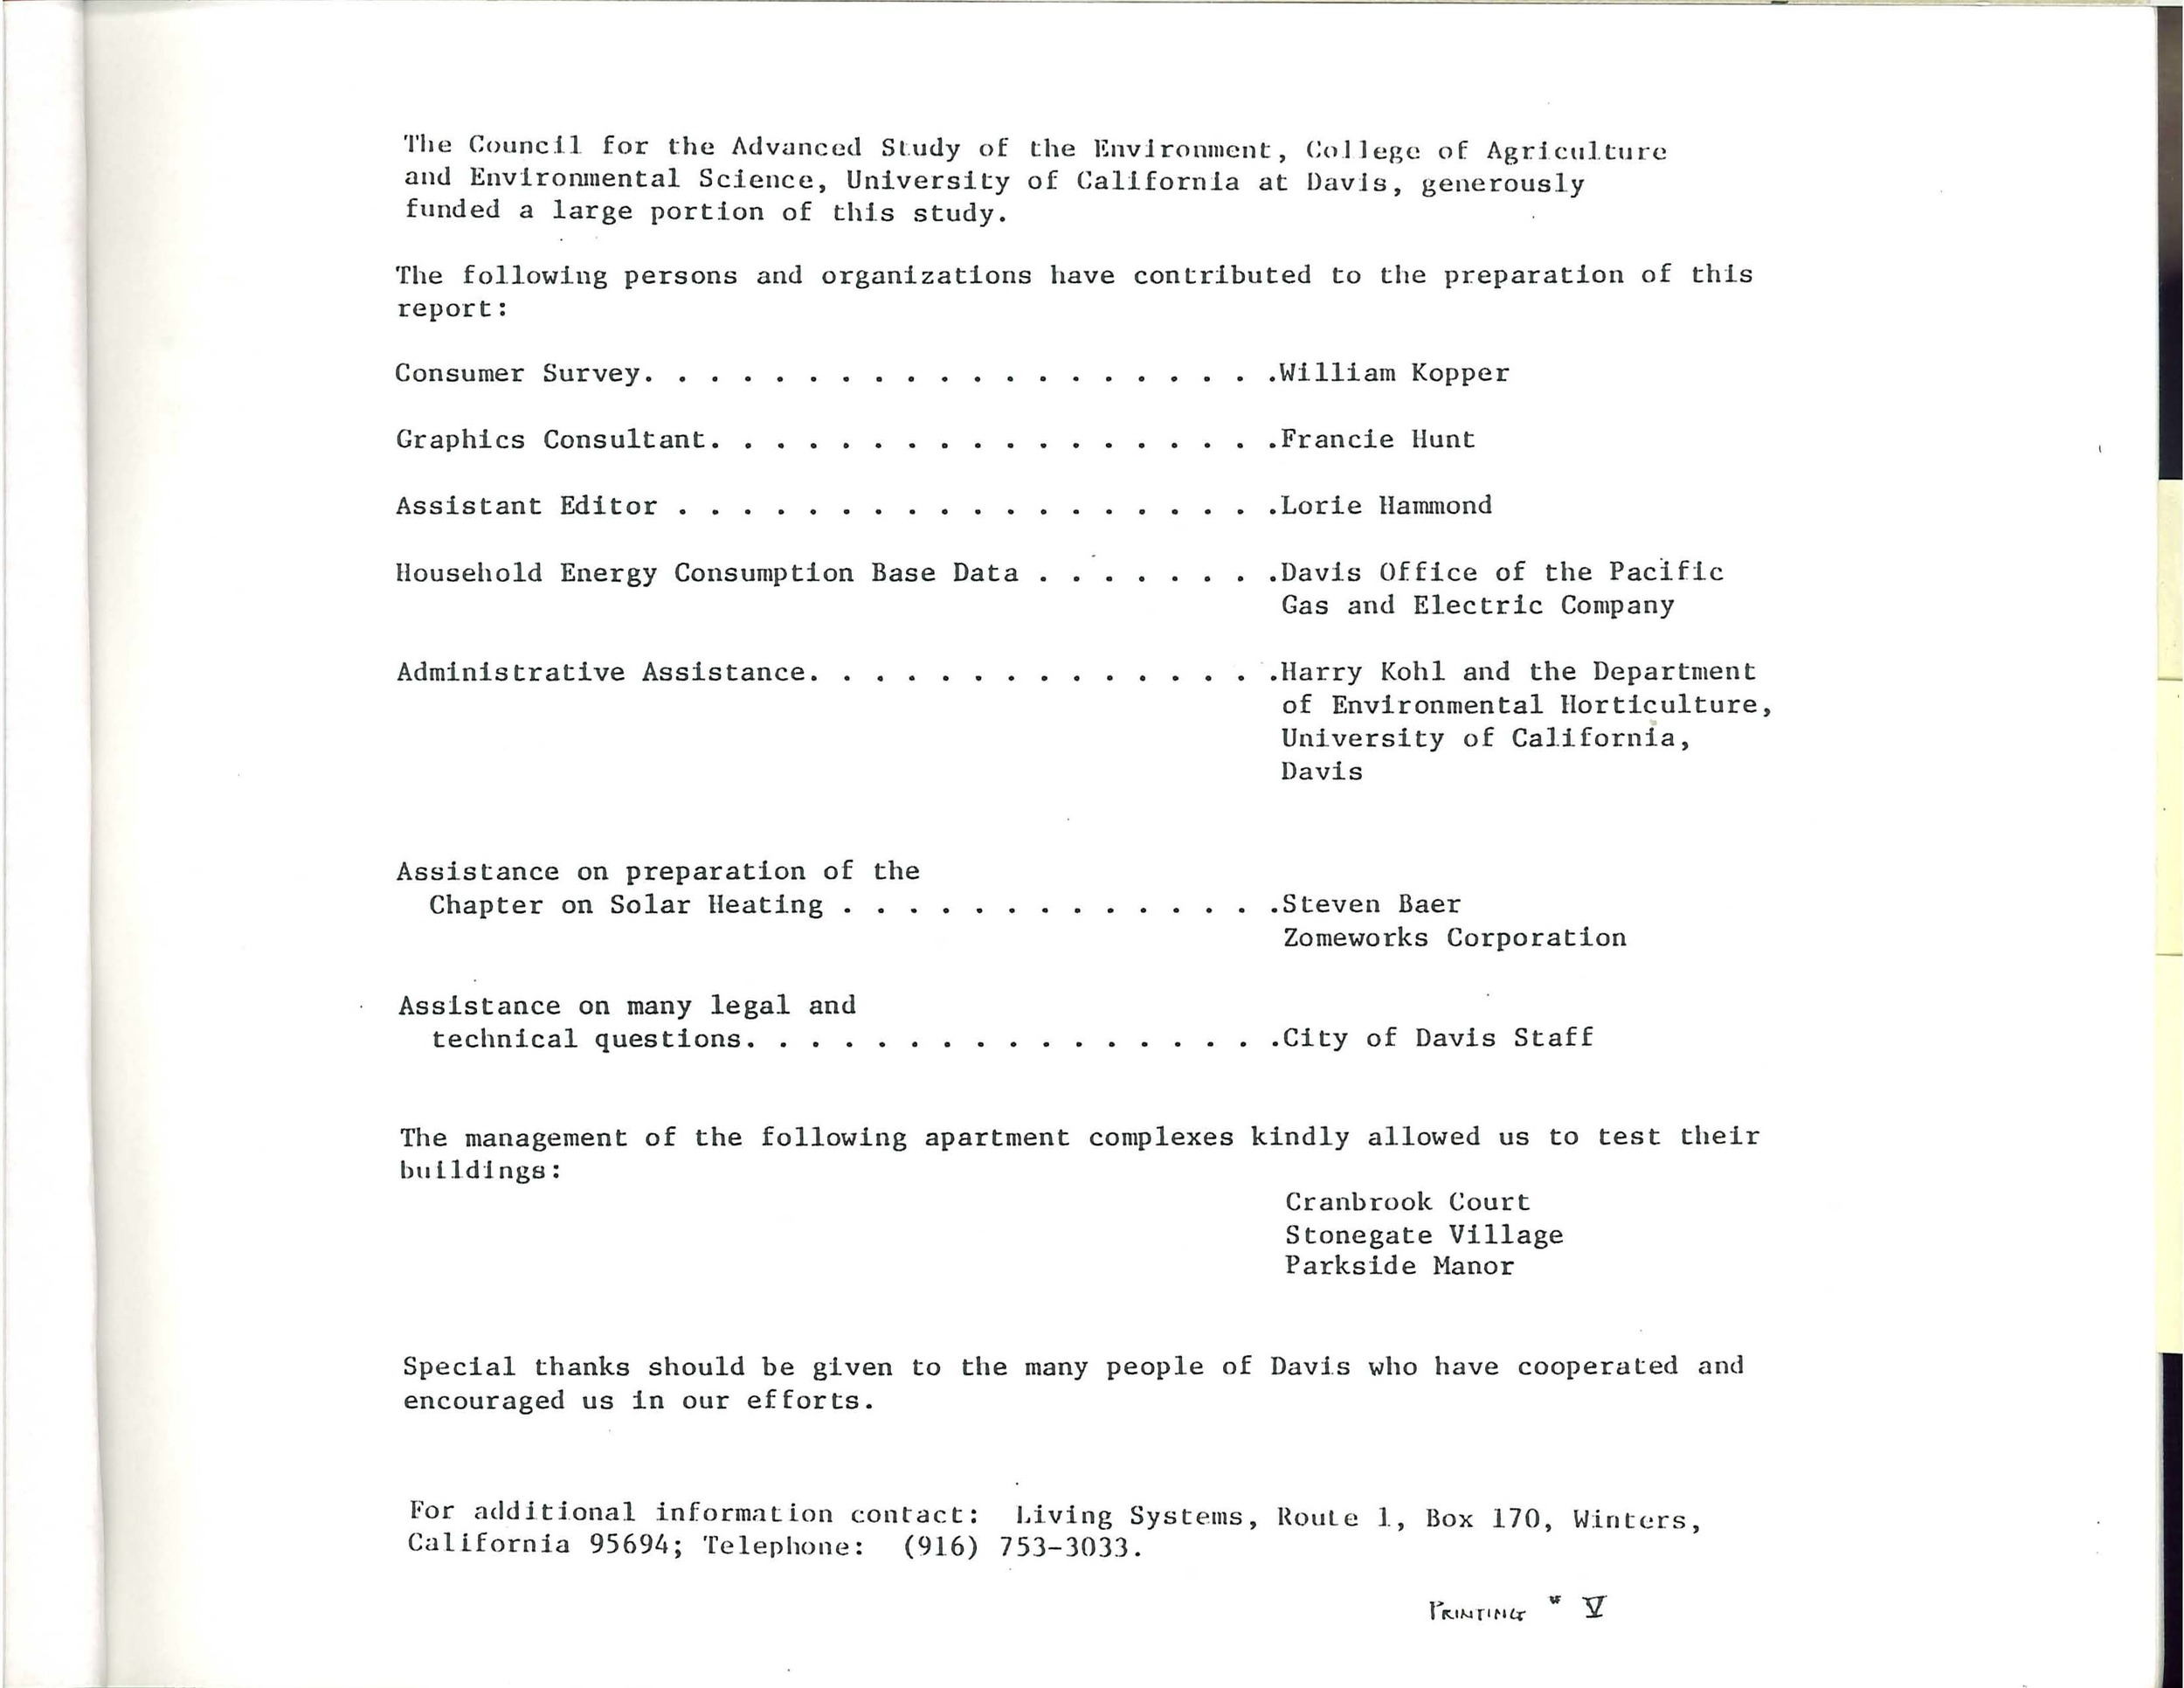 a strategy for energy conservation_1974_Page_3.jpg